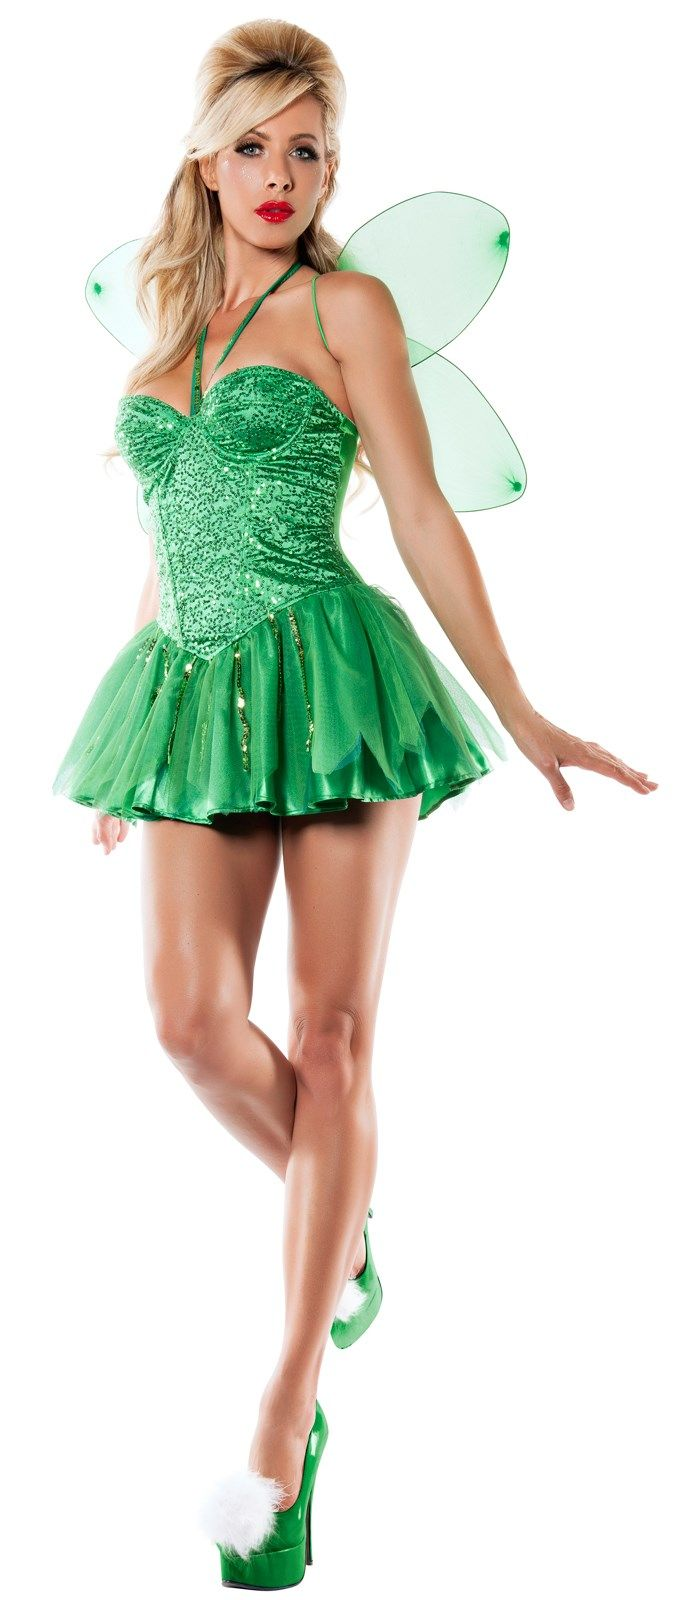 Womens Tinkerbell Fairy Costume Womens Tinkerbell Costume Costumes For Women Tinker Bell Costume Fairy Wings Costume [ 1600 x 675 Pixel ]